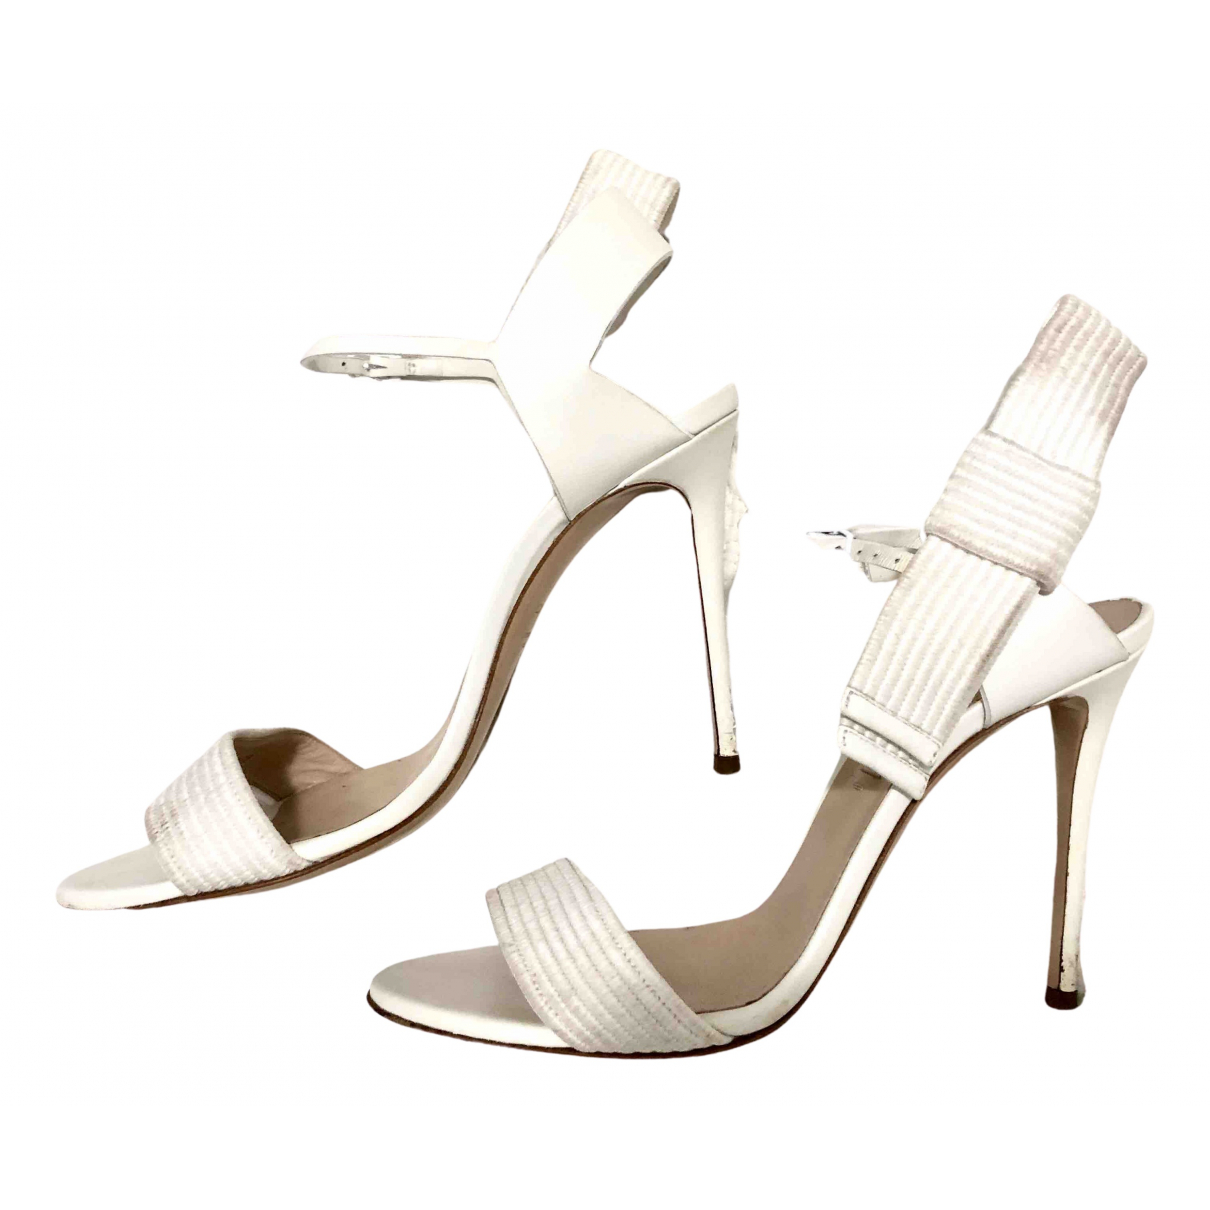 Casadei N White Leather Heels for Women 38 EU